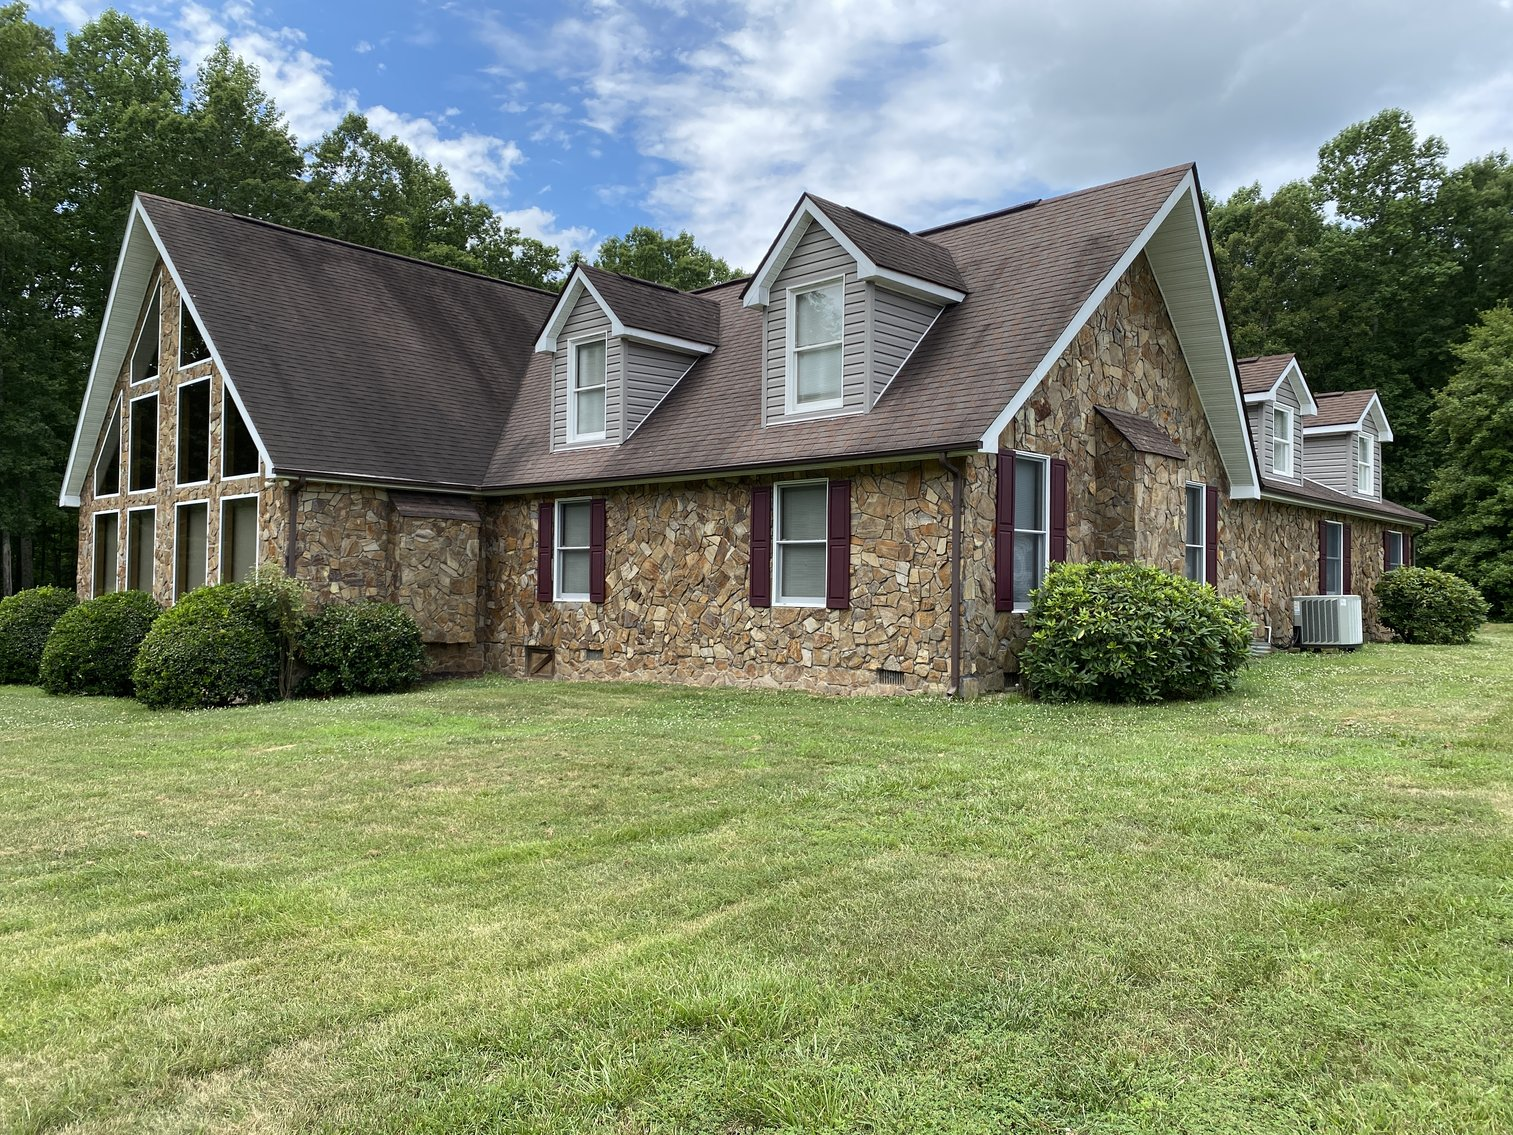 3 BR/5 BA Lake Anna Home on 1.4 +/- Acres w/40x60 Detached Building w/Office--Louisa County, VA